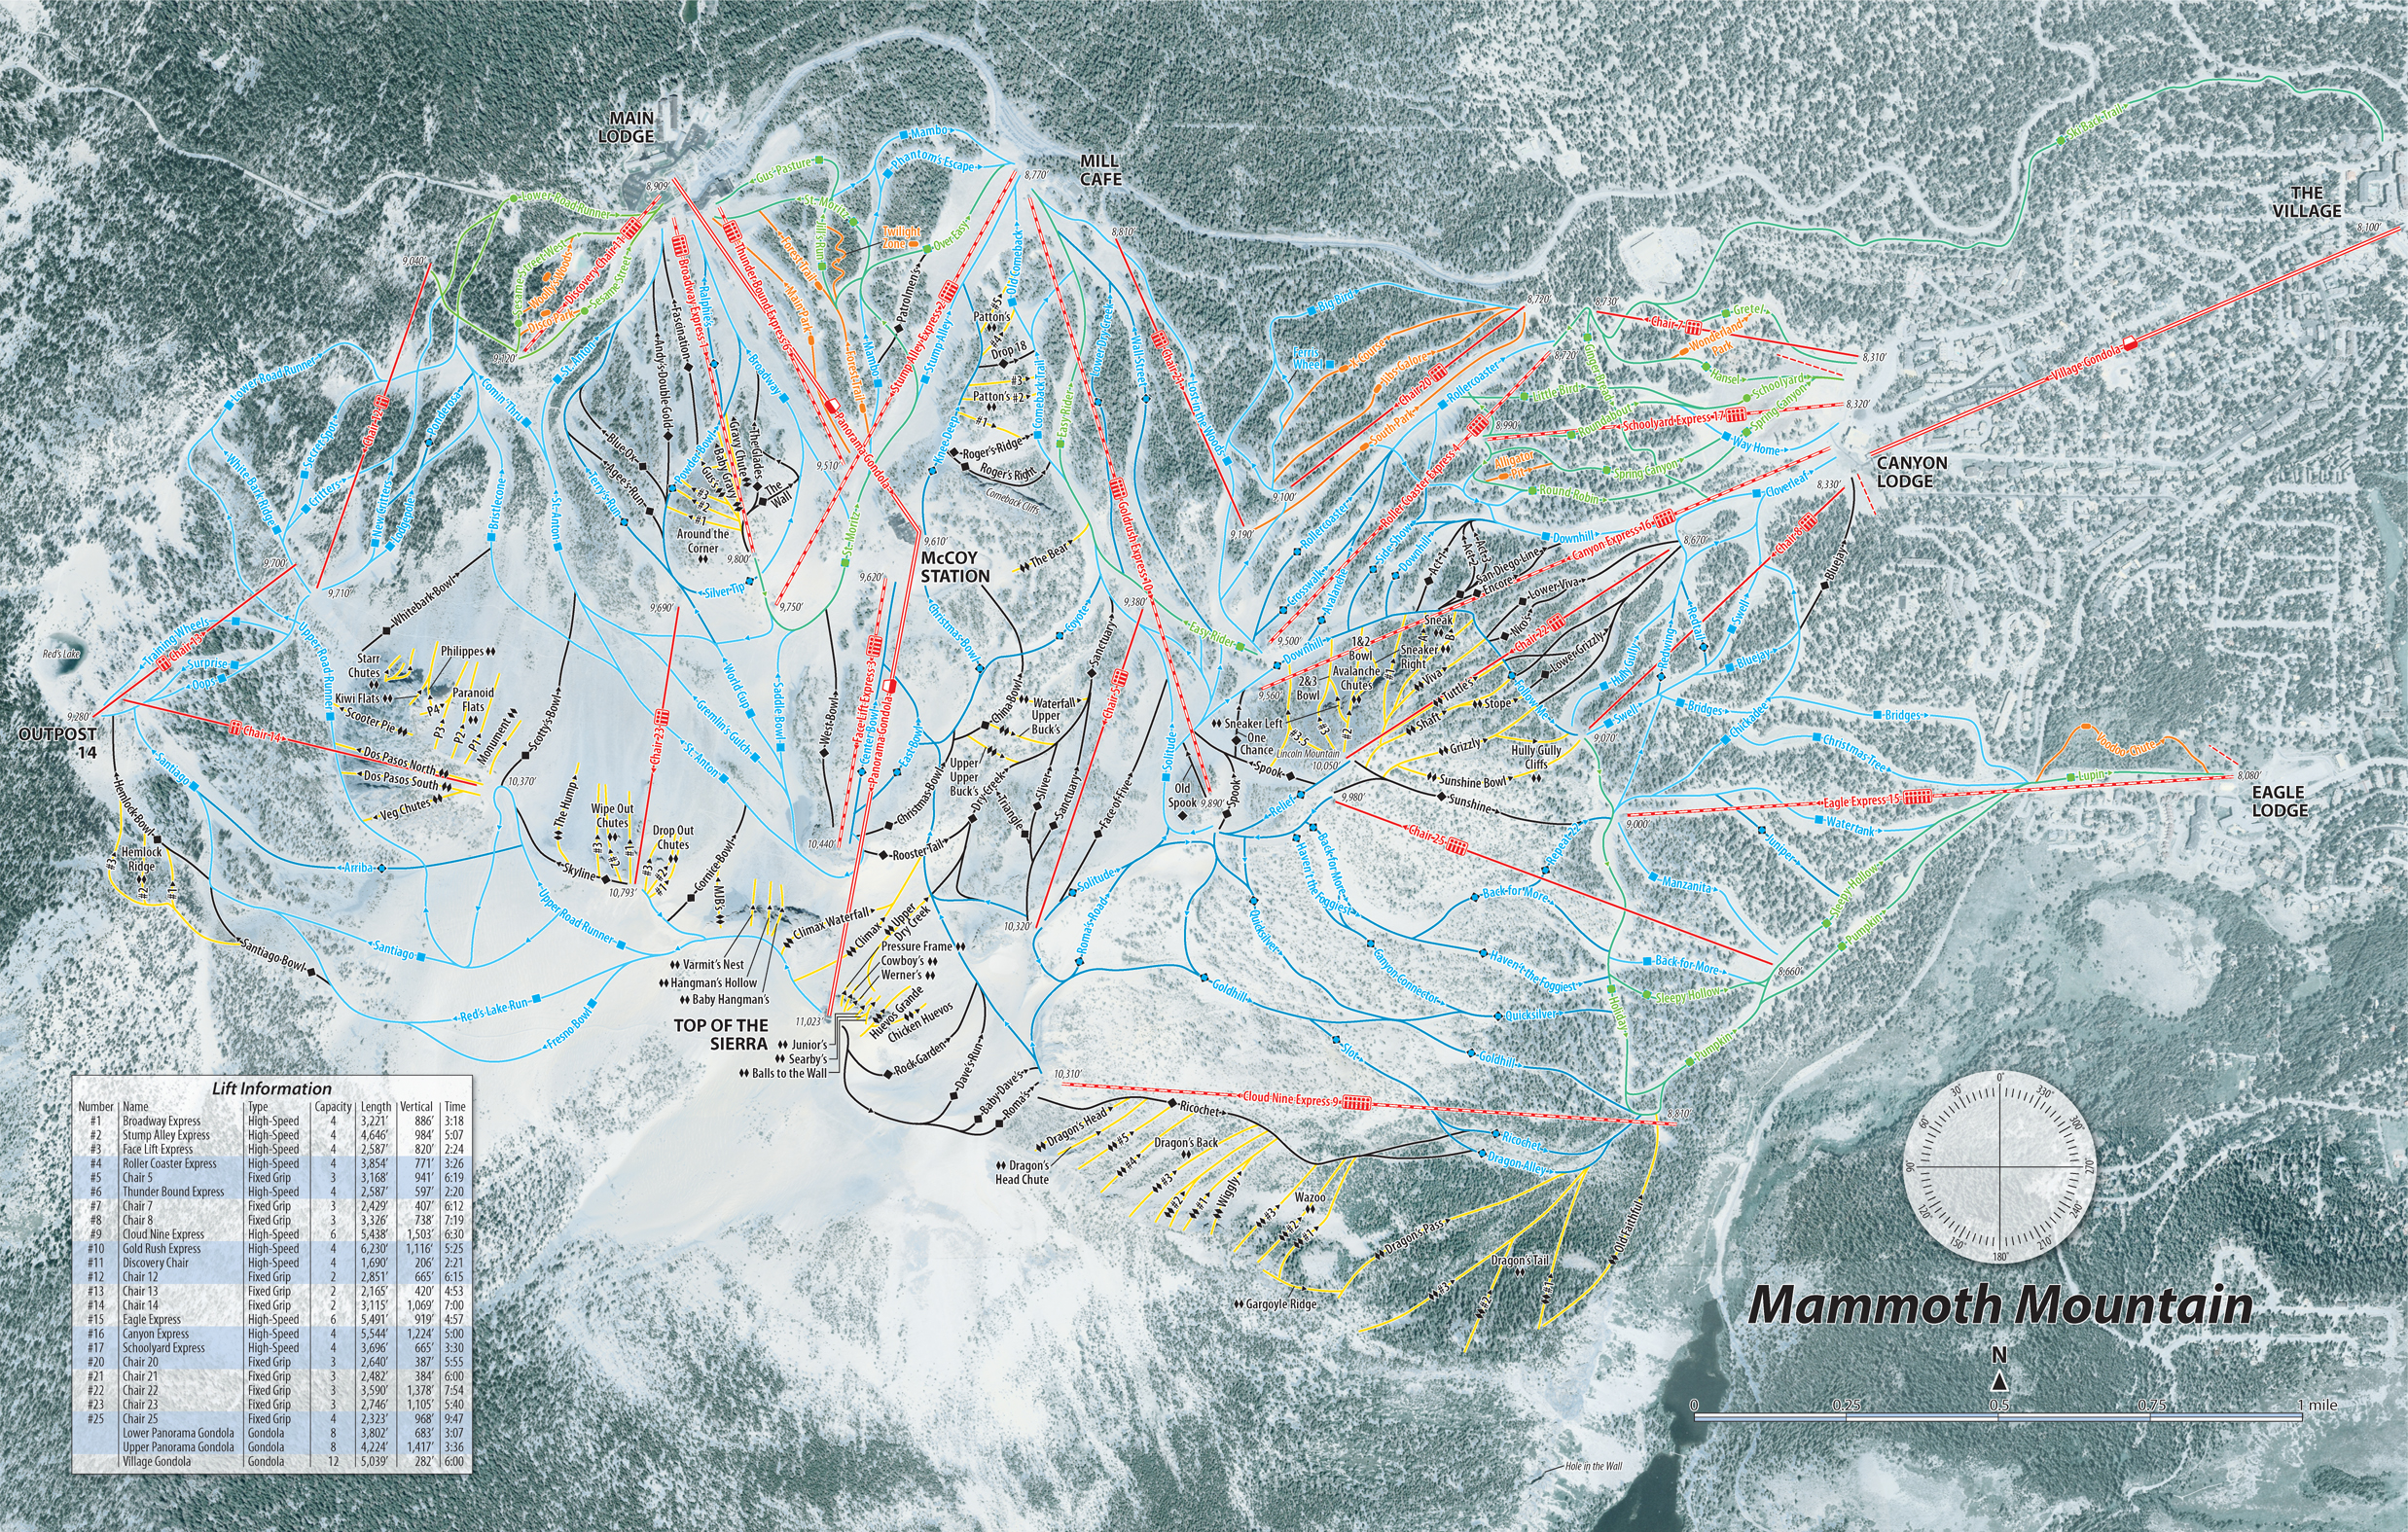 Handsome Rob's Overhead Map of Mammoth Mountain Ski Area on